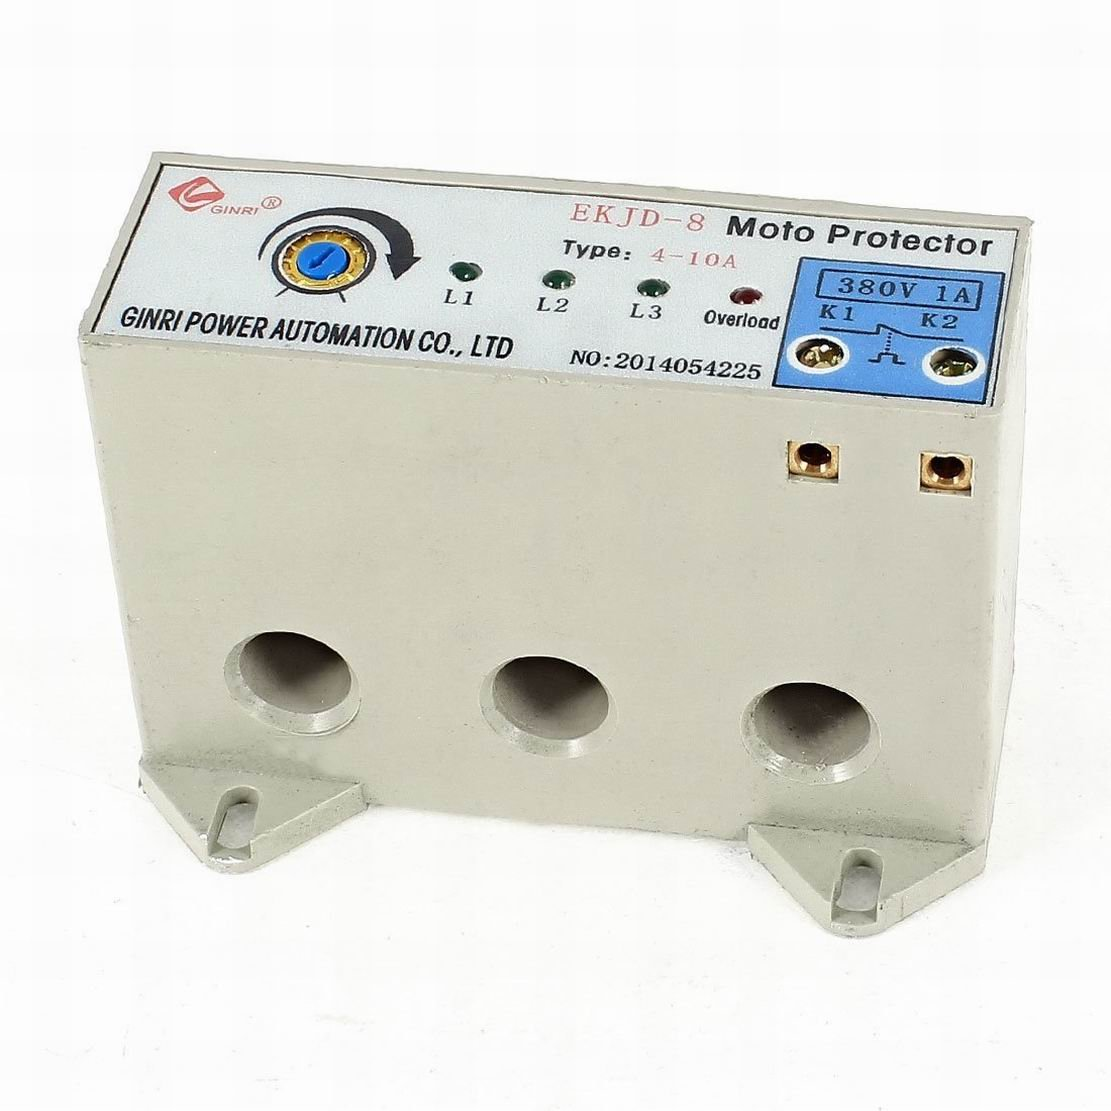 Uptell EKJD-8 3 Phase 4-10 Ampere Adjustable Current Motor Circuit Protector